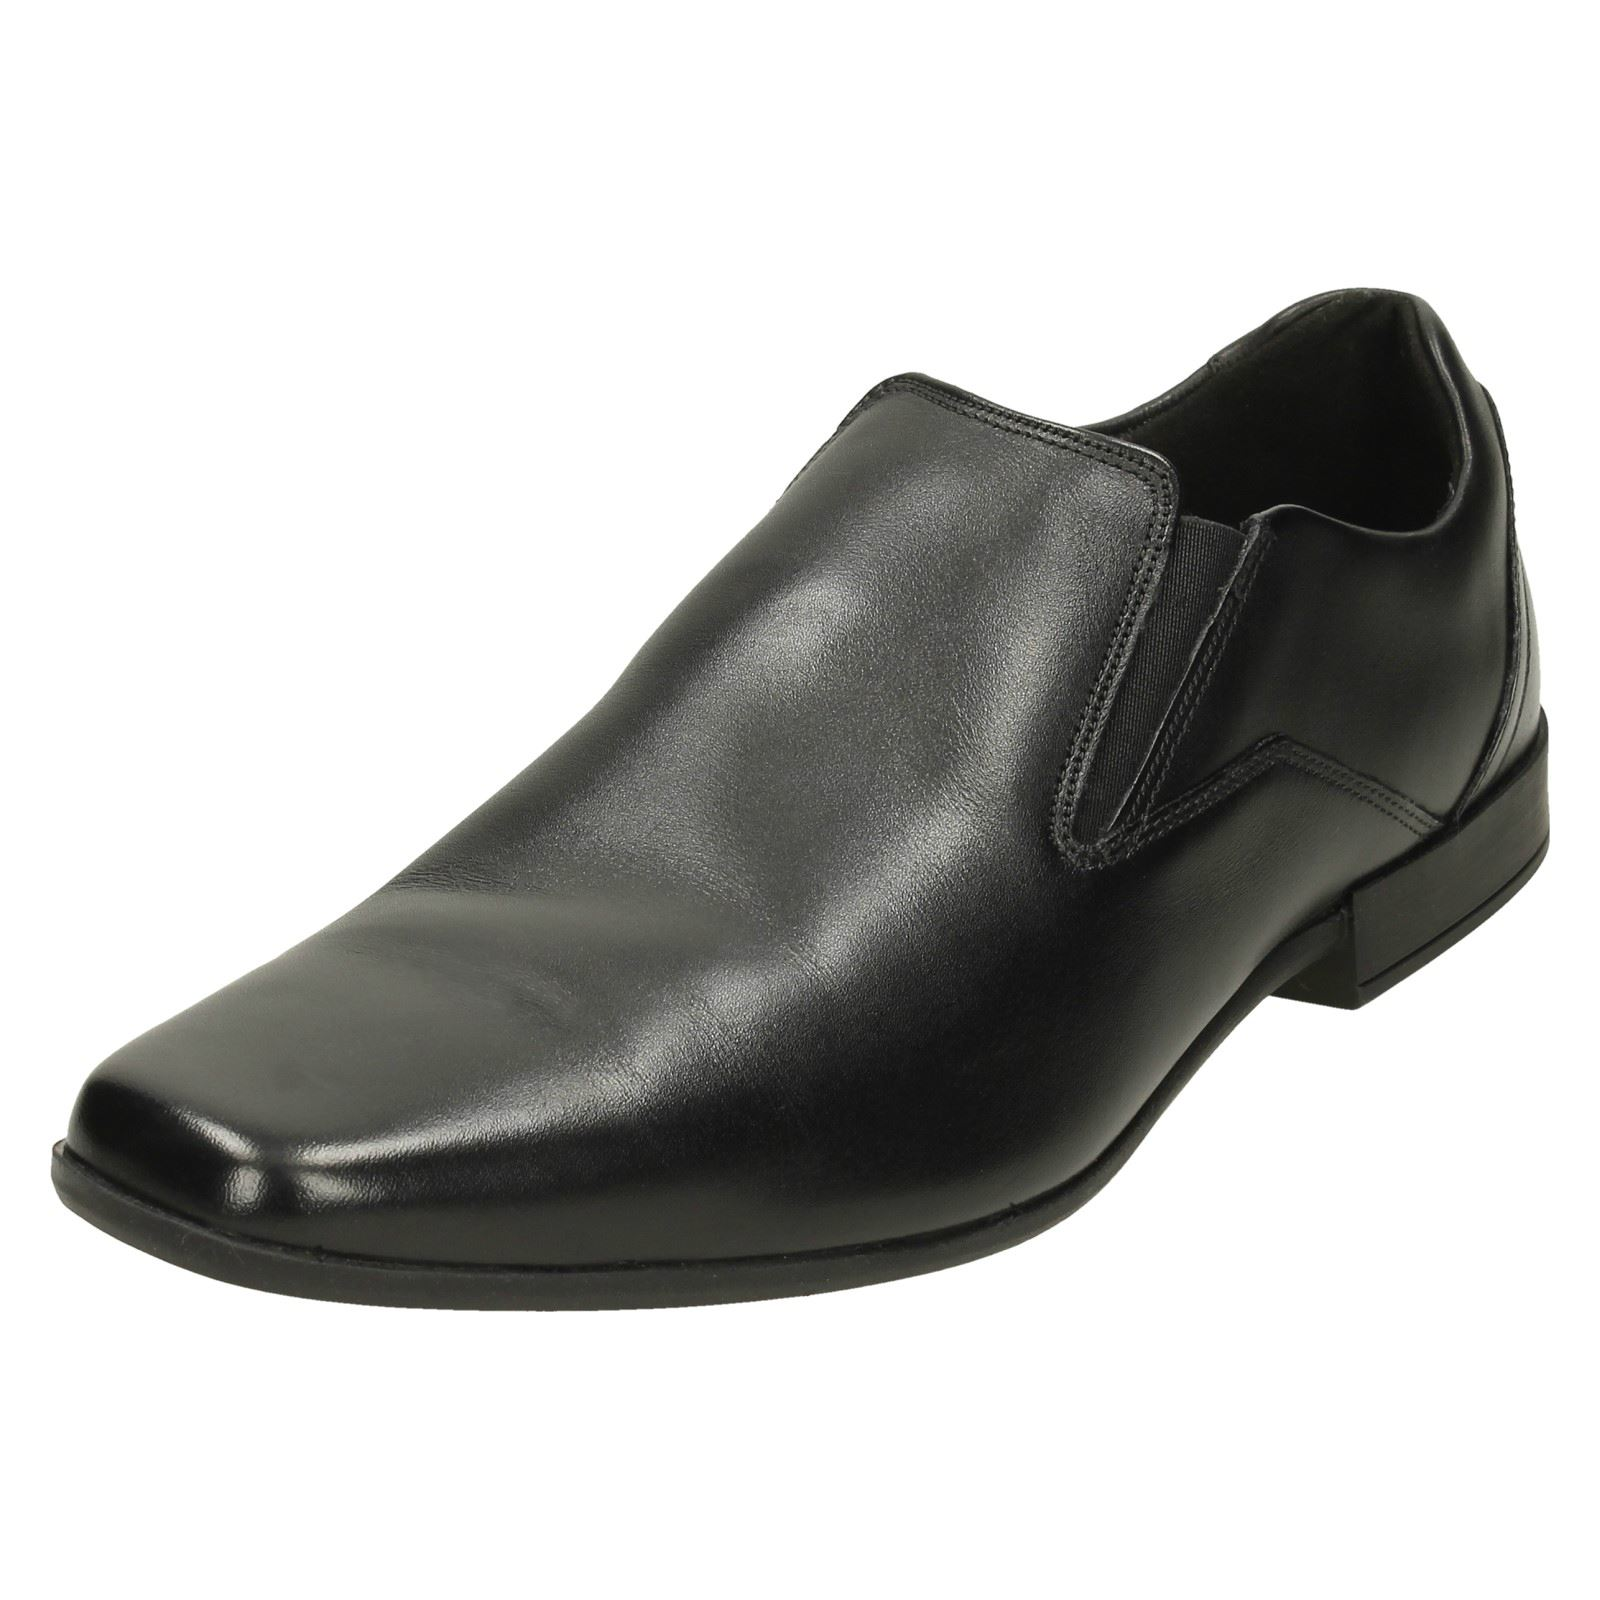 Herren Clarks Formal Schuhes Glement Slip